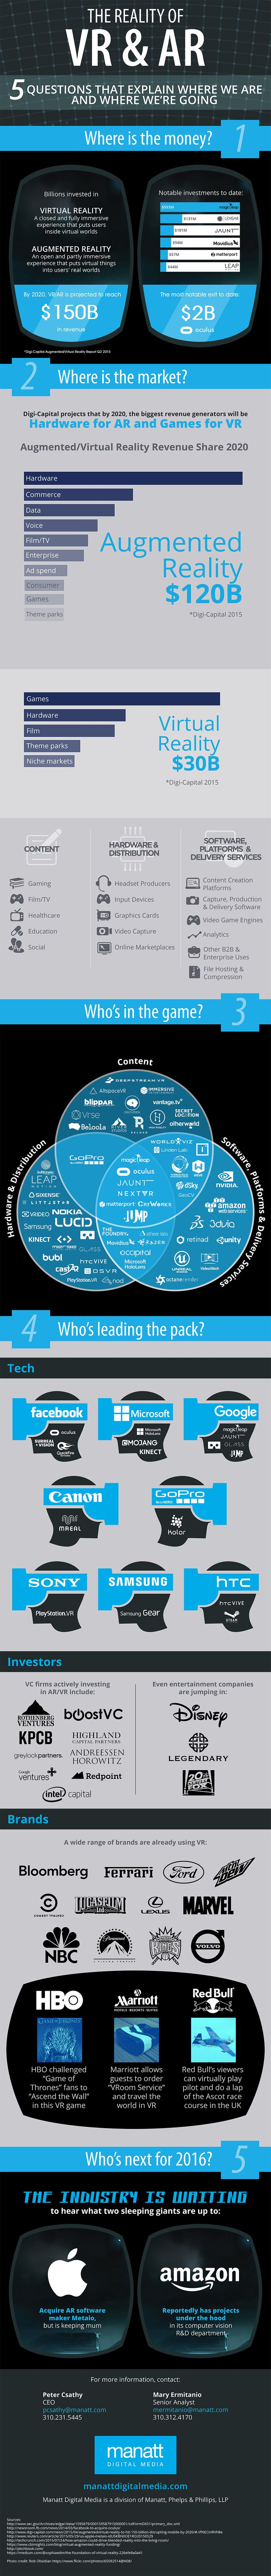 The Reality of VR and AR #infographic #Technology #AugmentedReality #VirtualReality